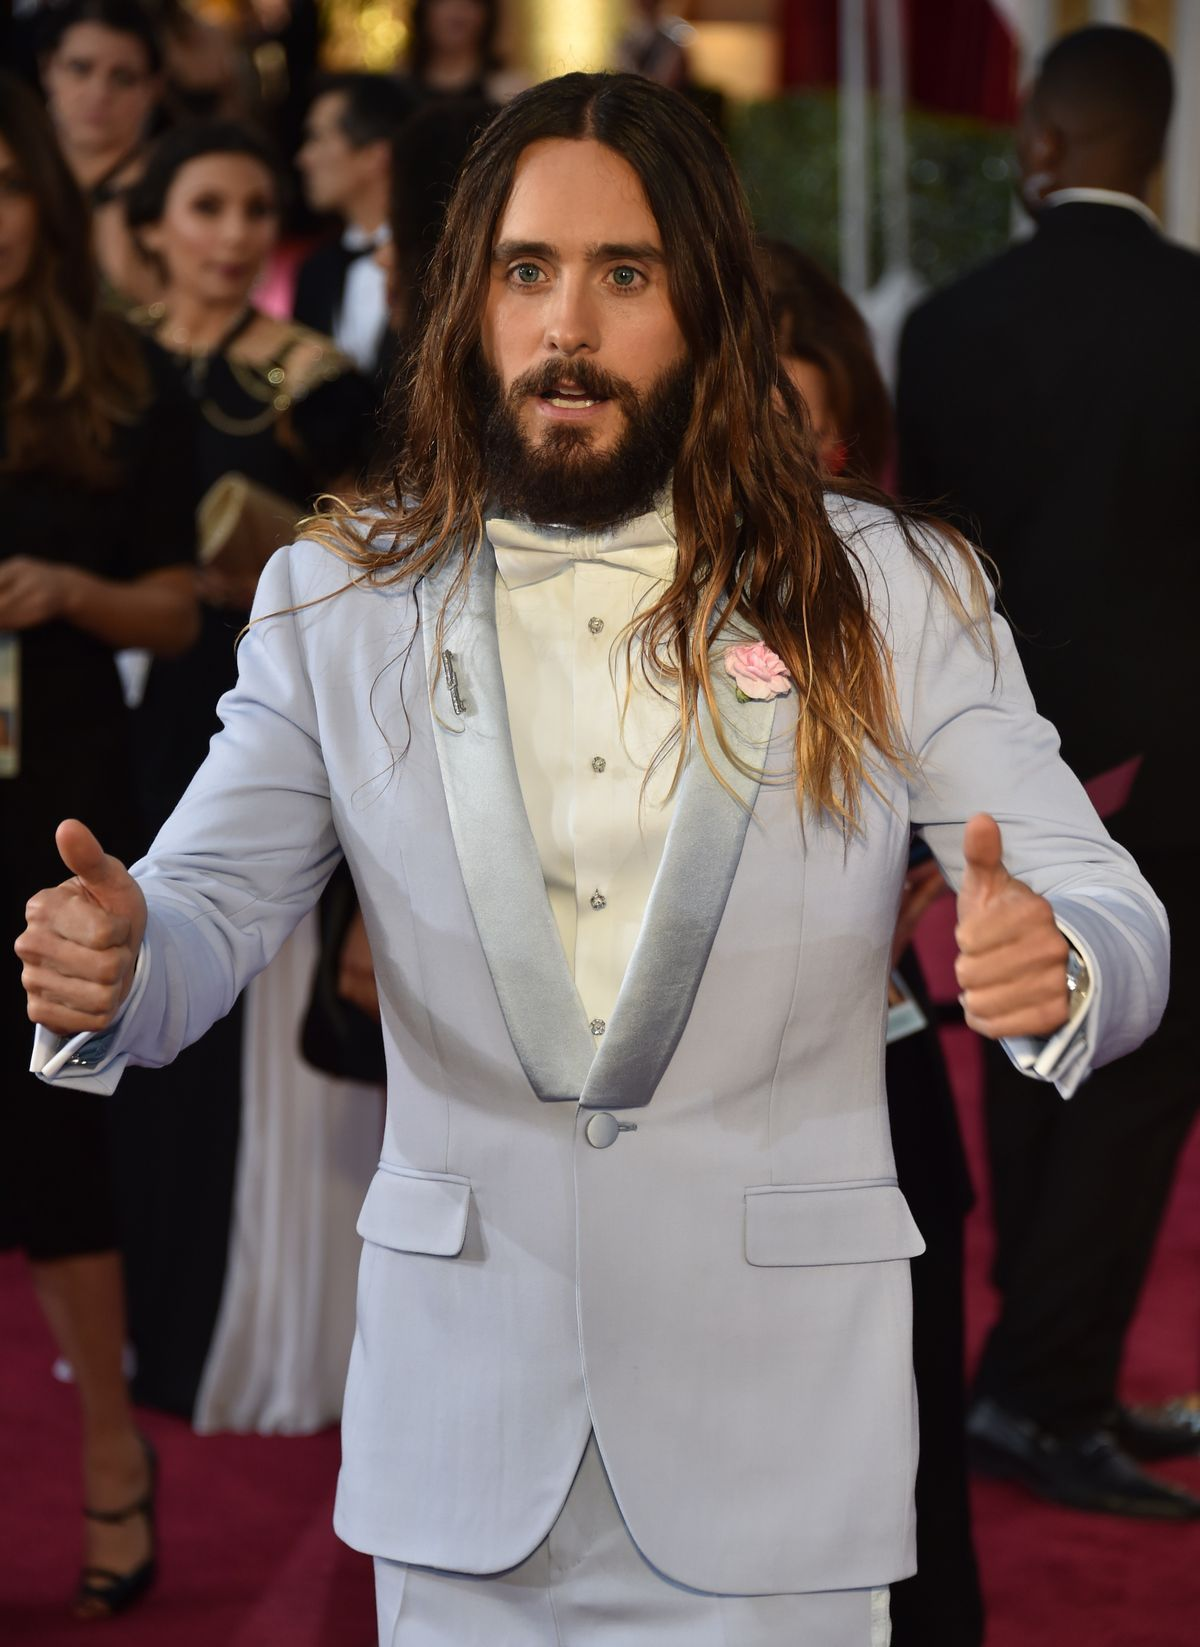 14 Pictures Proving That Jared Leto Had More Fun Than Anyone On Oscar Night Leto2-1424700324.jpg?quality=0